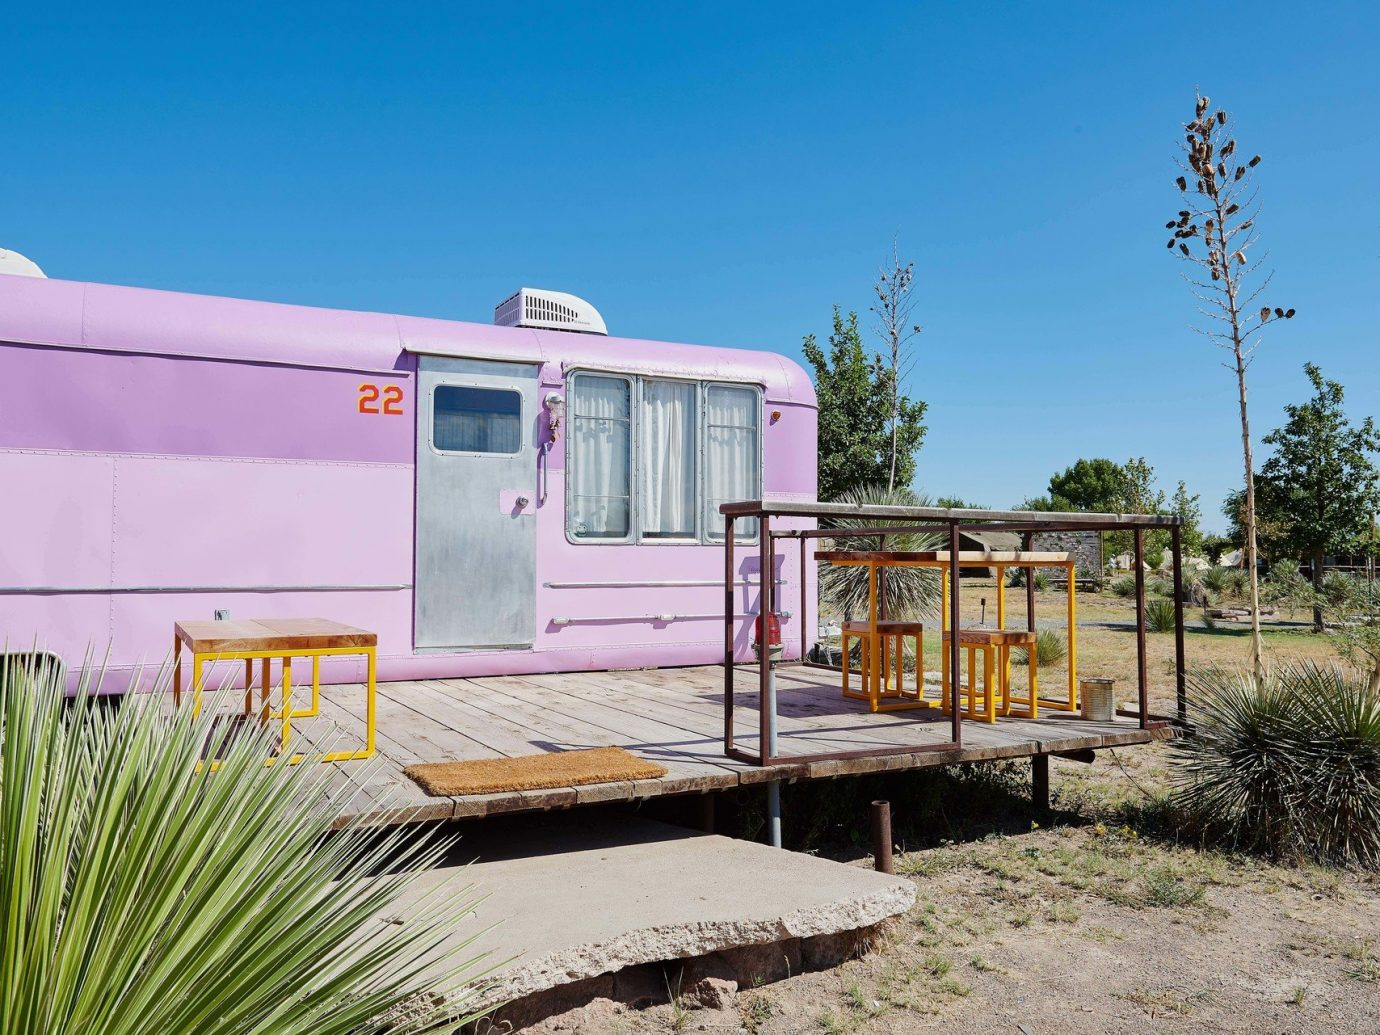 airstream artistic artsy calm Exterior Hip Hotels isolation quirky remote serene Solo Travel trendy Trip Ideas outdoor sky property transport trailer home house real estate cottage vehicle shack shed outdoor structure hut